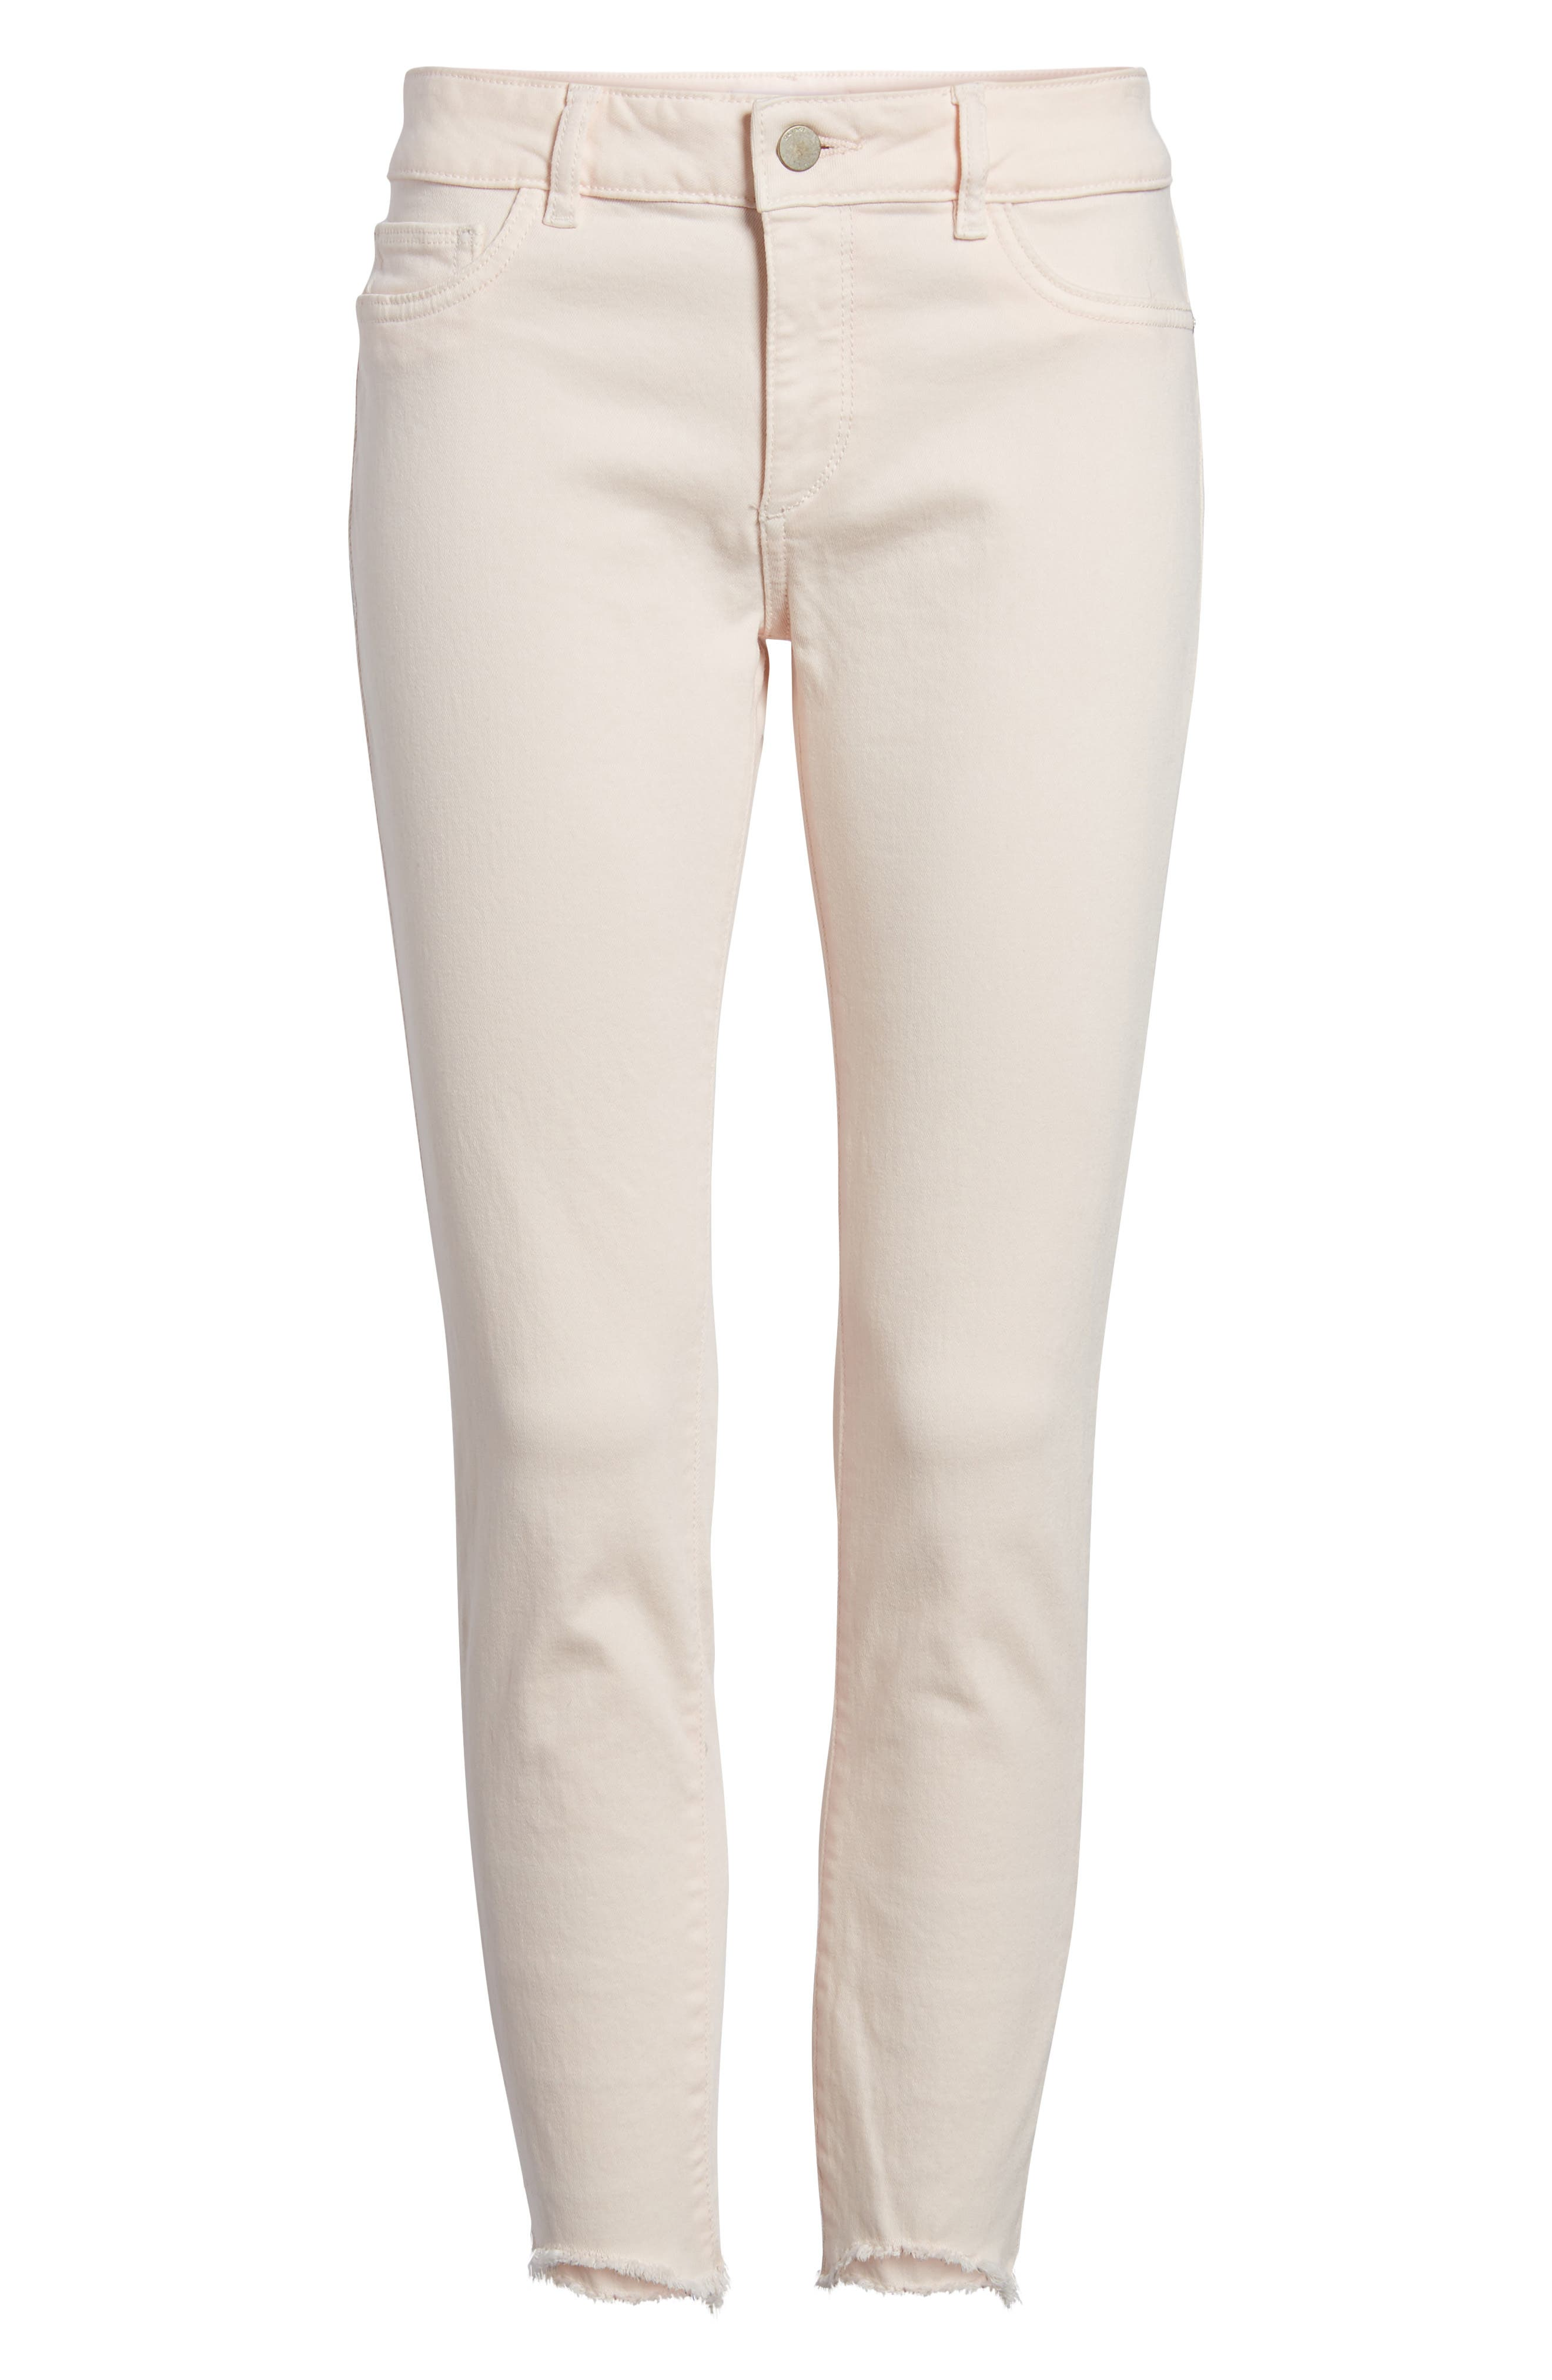 Florence Instasculpt Crop Skinny Jeans,                             Alternate thumbnail 6, color,                             Blush Pink